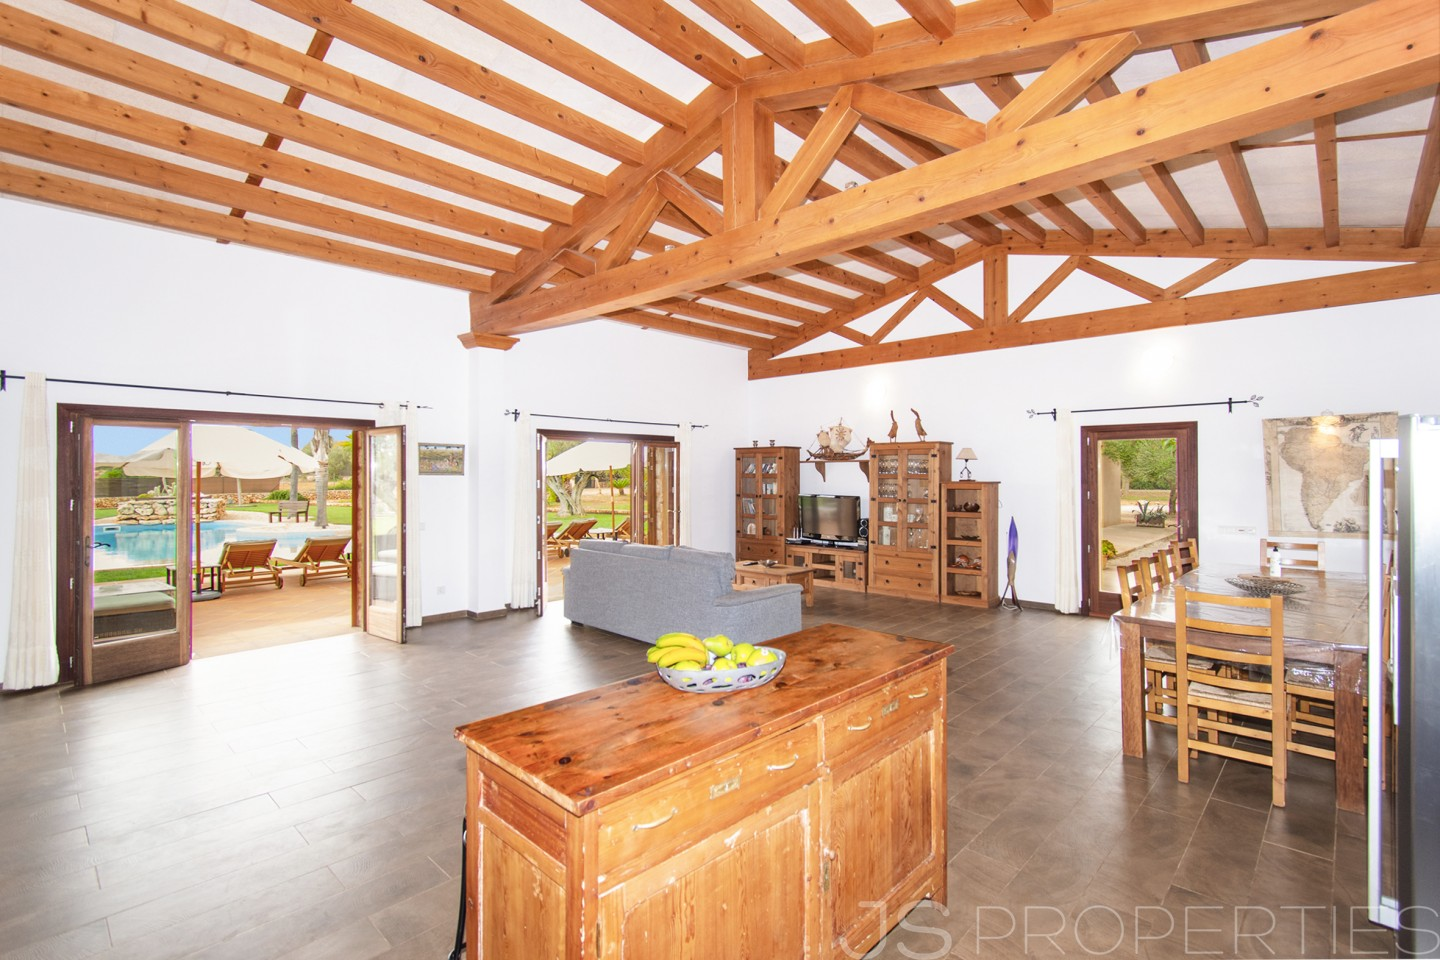 Outstanding villa with holiday rental license set on the outskirts of Campos